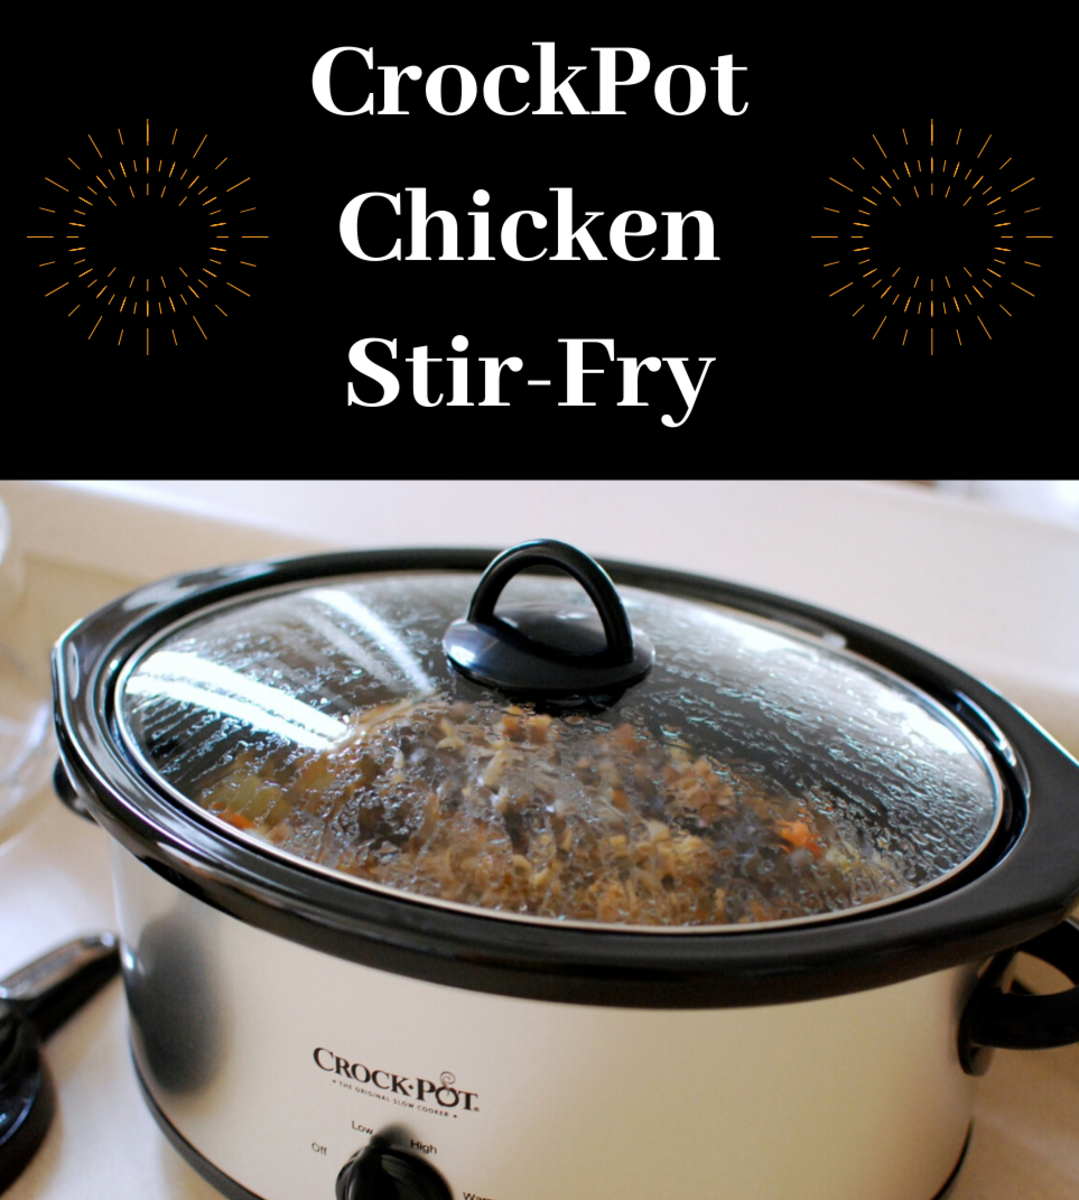 CrockPot Chicken Stir-Fry for Slow Cooker Nights